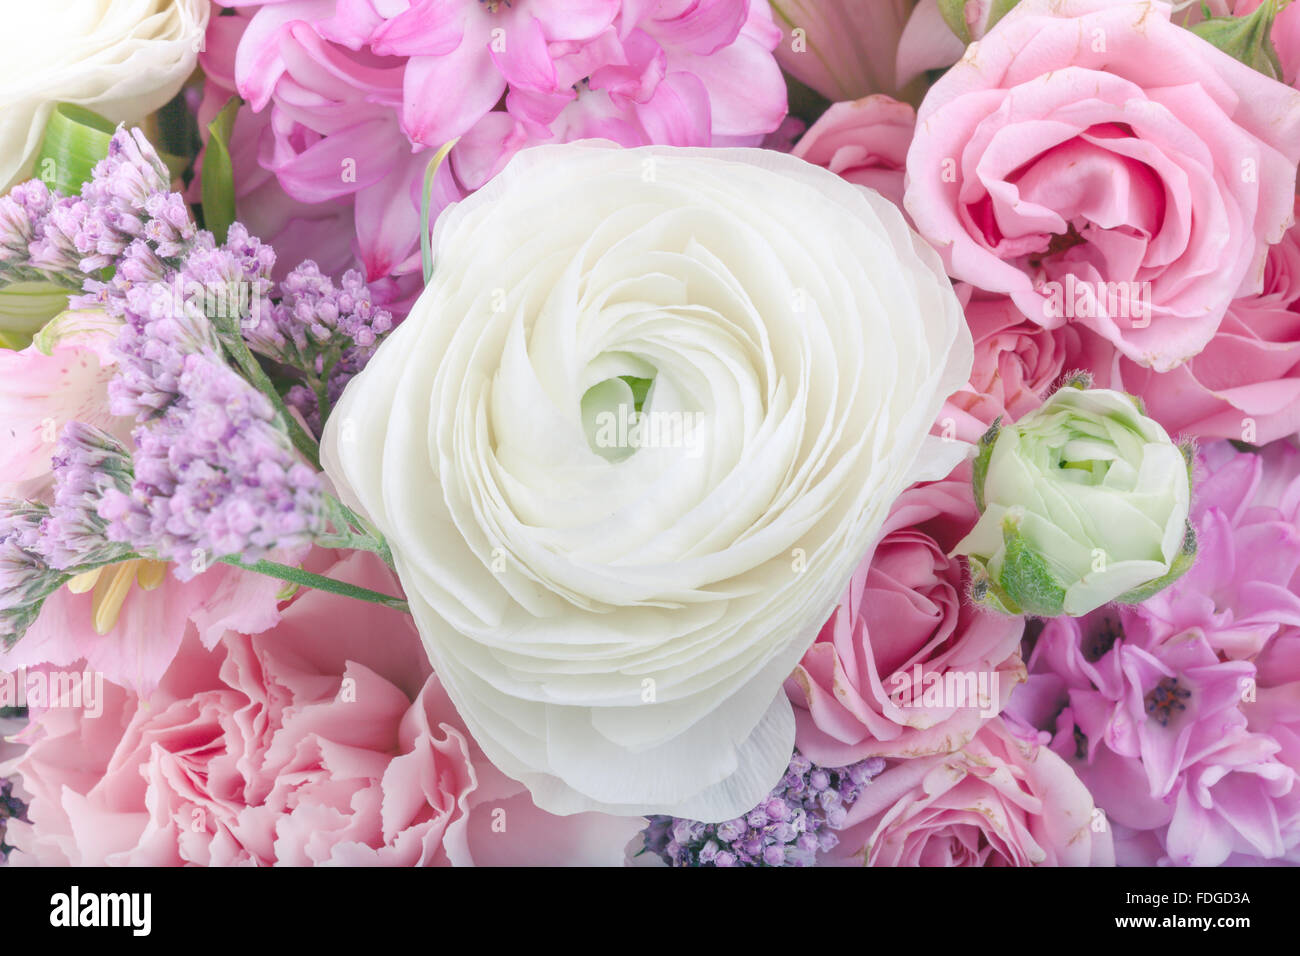 Amazing flower bouquet arrangement close up in pastel colors stock amazing flower bouquet arrangement close up in pastel colors izmirmasajfo